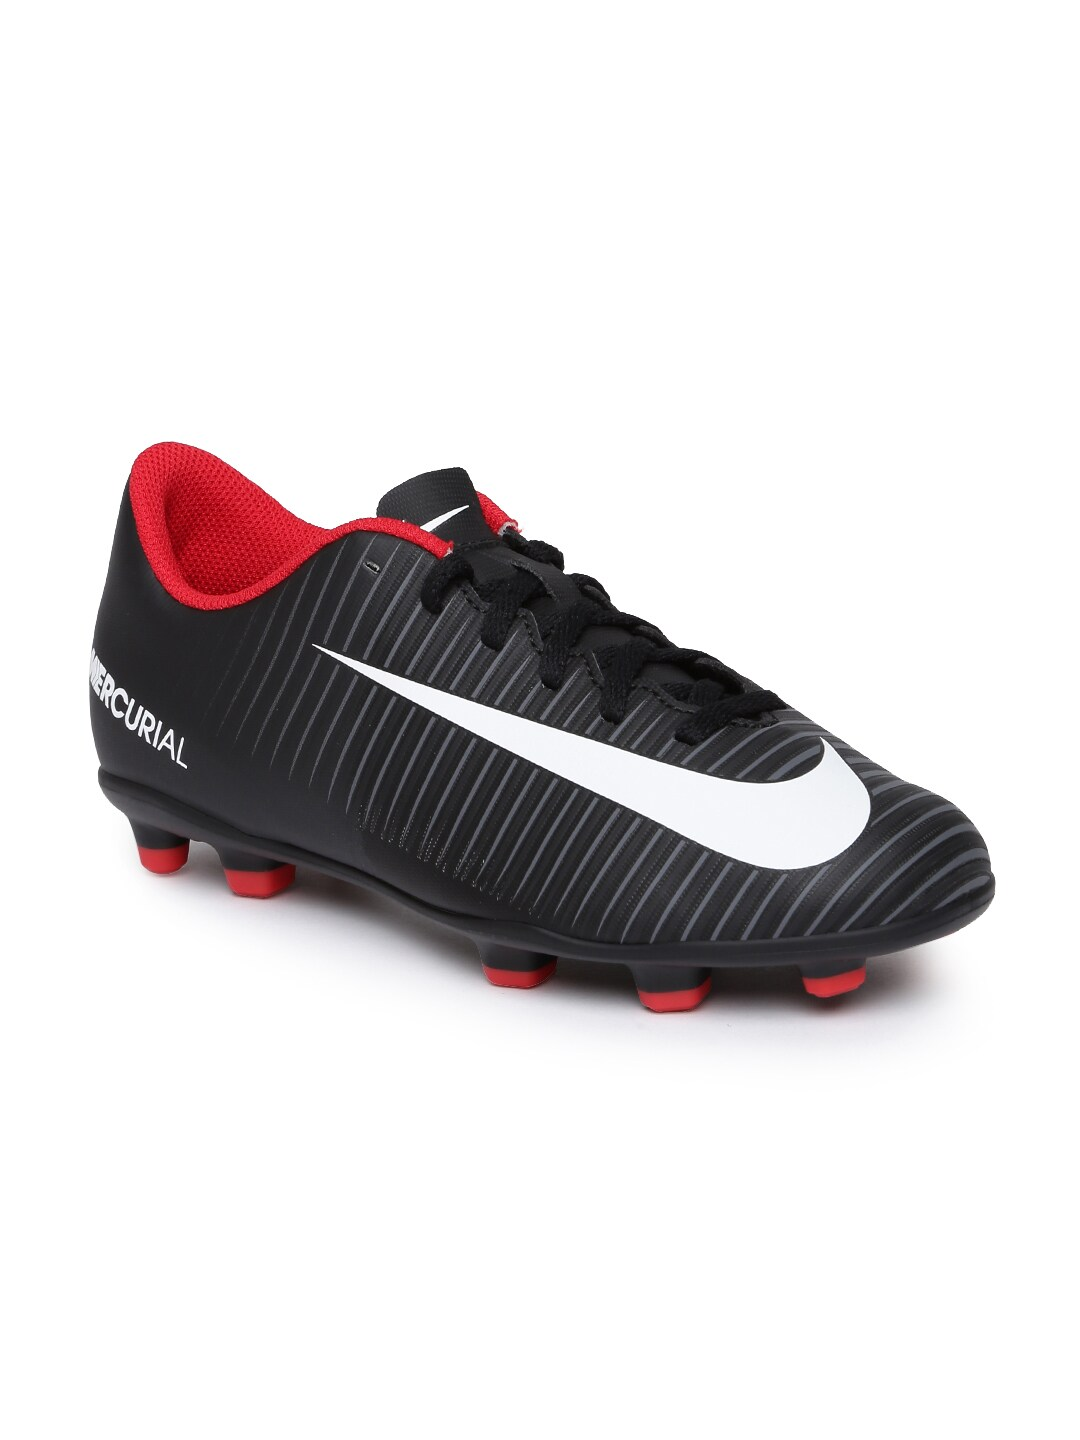 timeless design 0fe72 b638f Nike Mercurial Cr7 - Buy Nike Mercurial Cr7 online in India